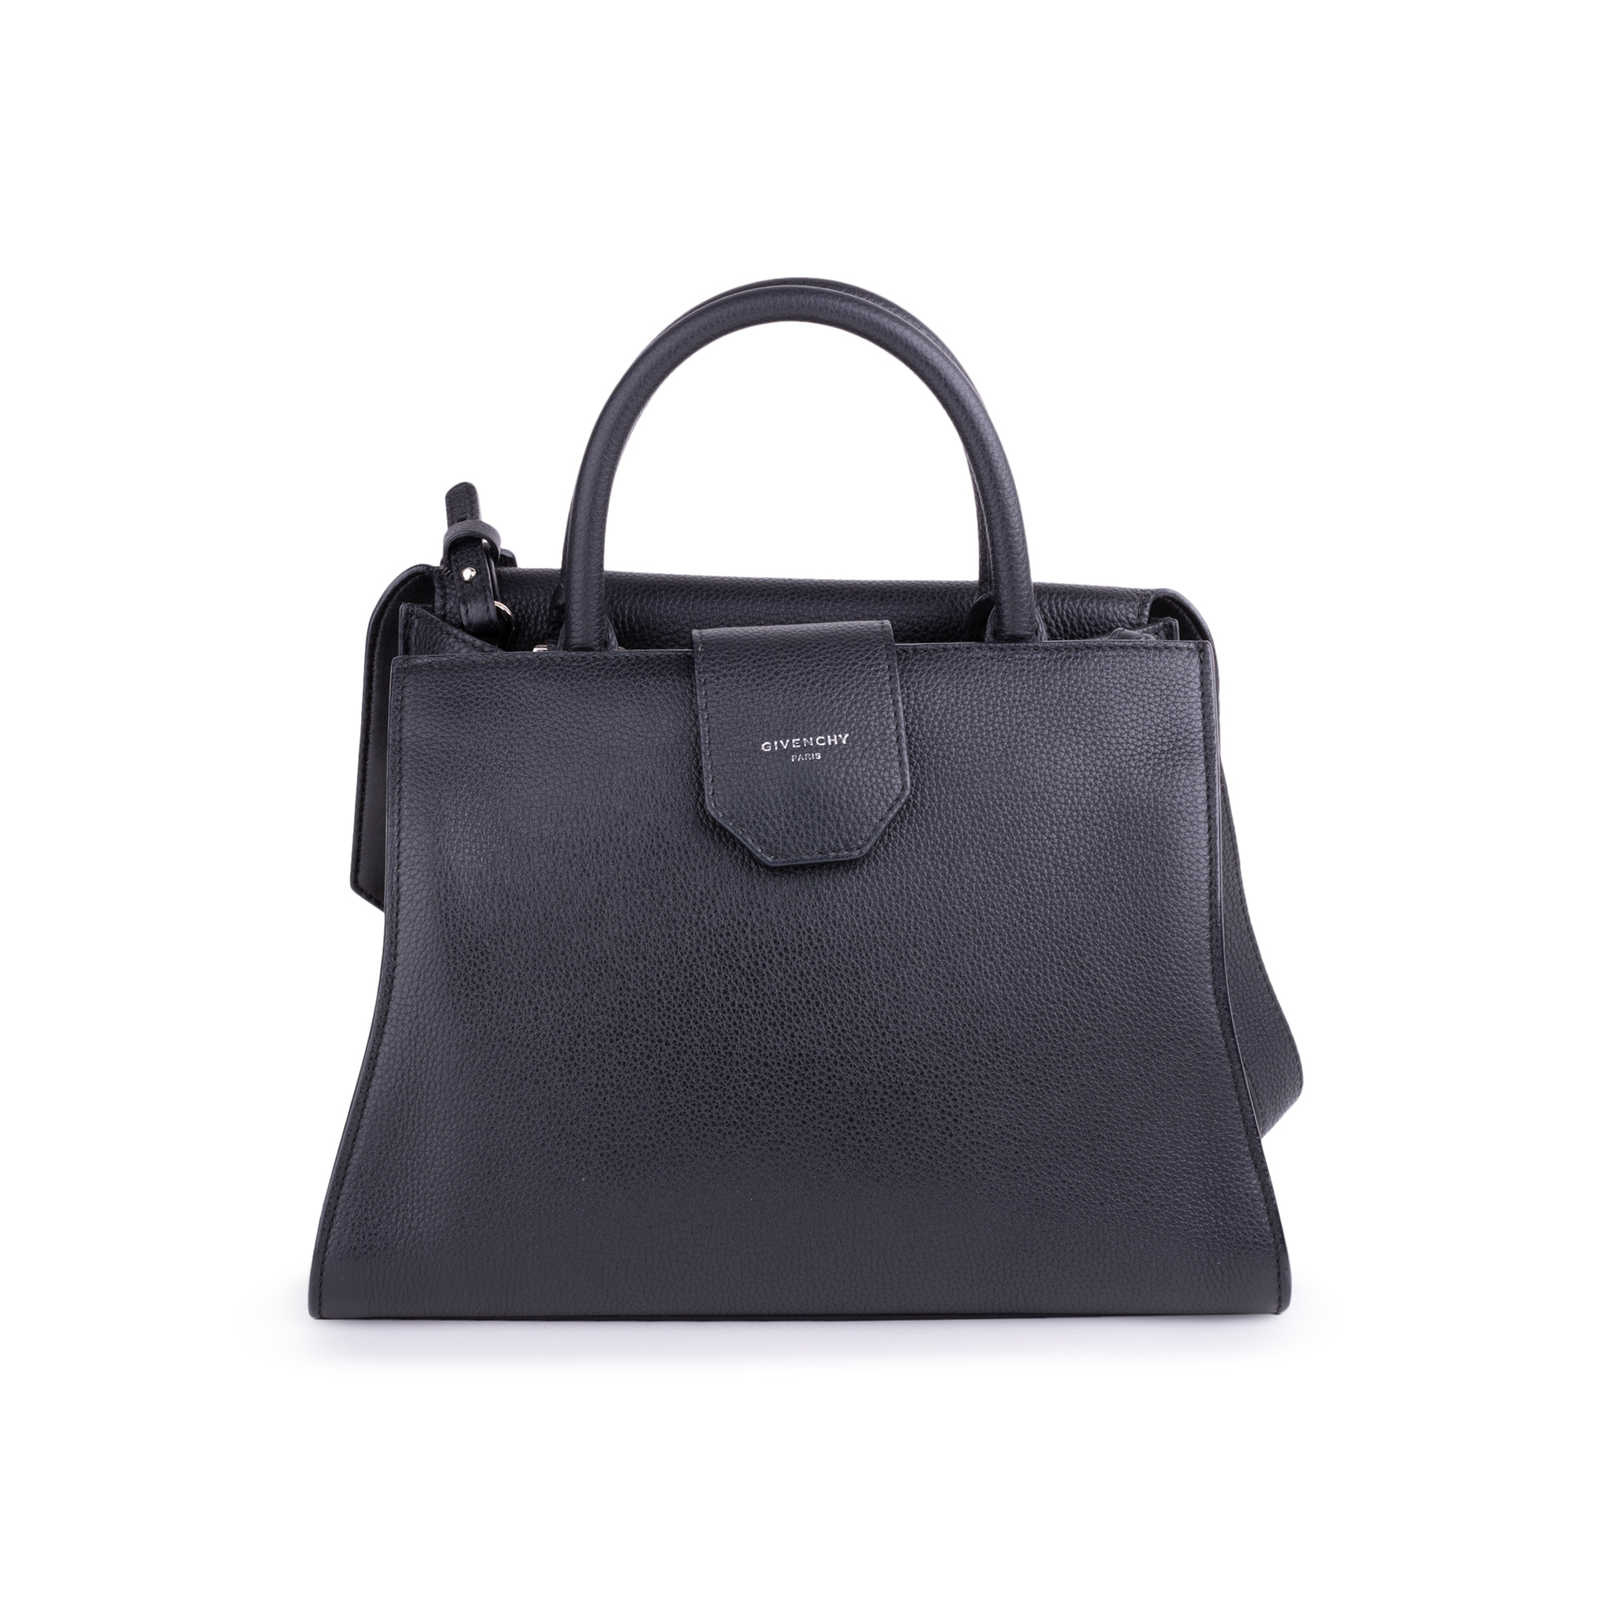 d1c3108586 ... Authentic Second Hand Givenchy Obsedia Small Tote Bag (PSS-034-00043)  ...